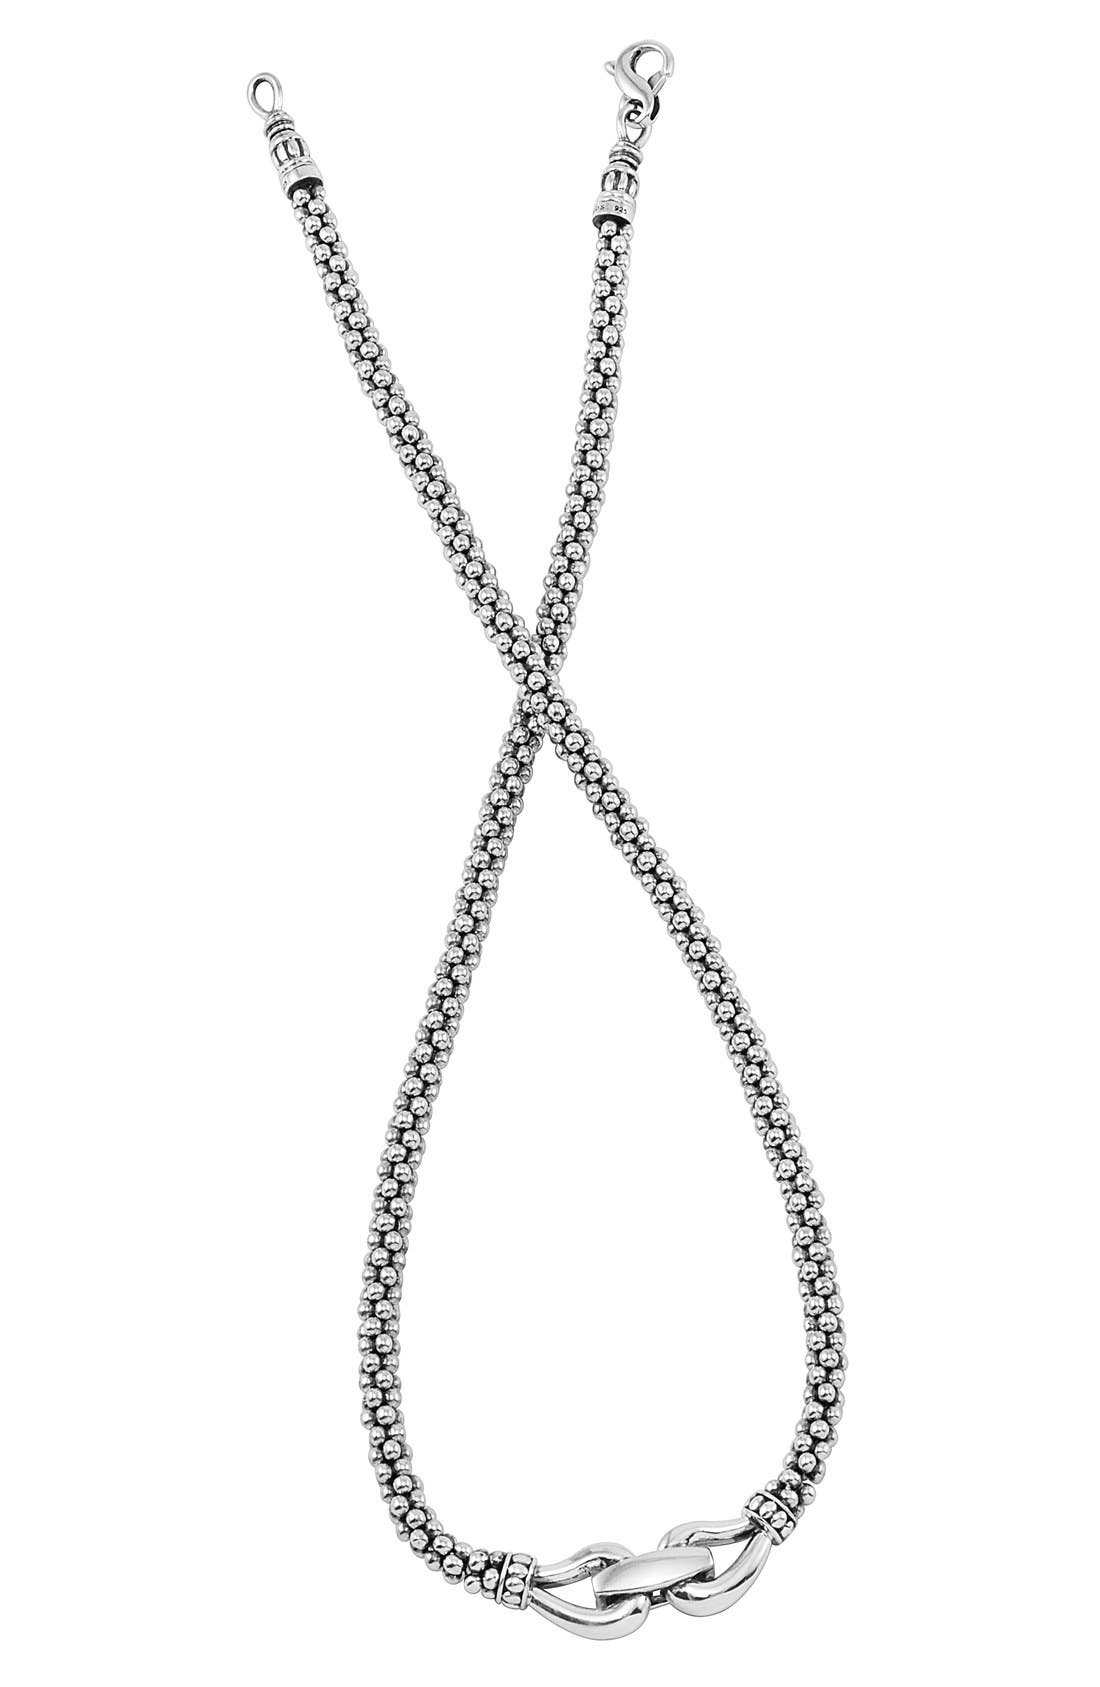 'Derby' Buckle Rope Necklace,                             Main thumbnail 1, color,                             STERLING SILVER